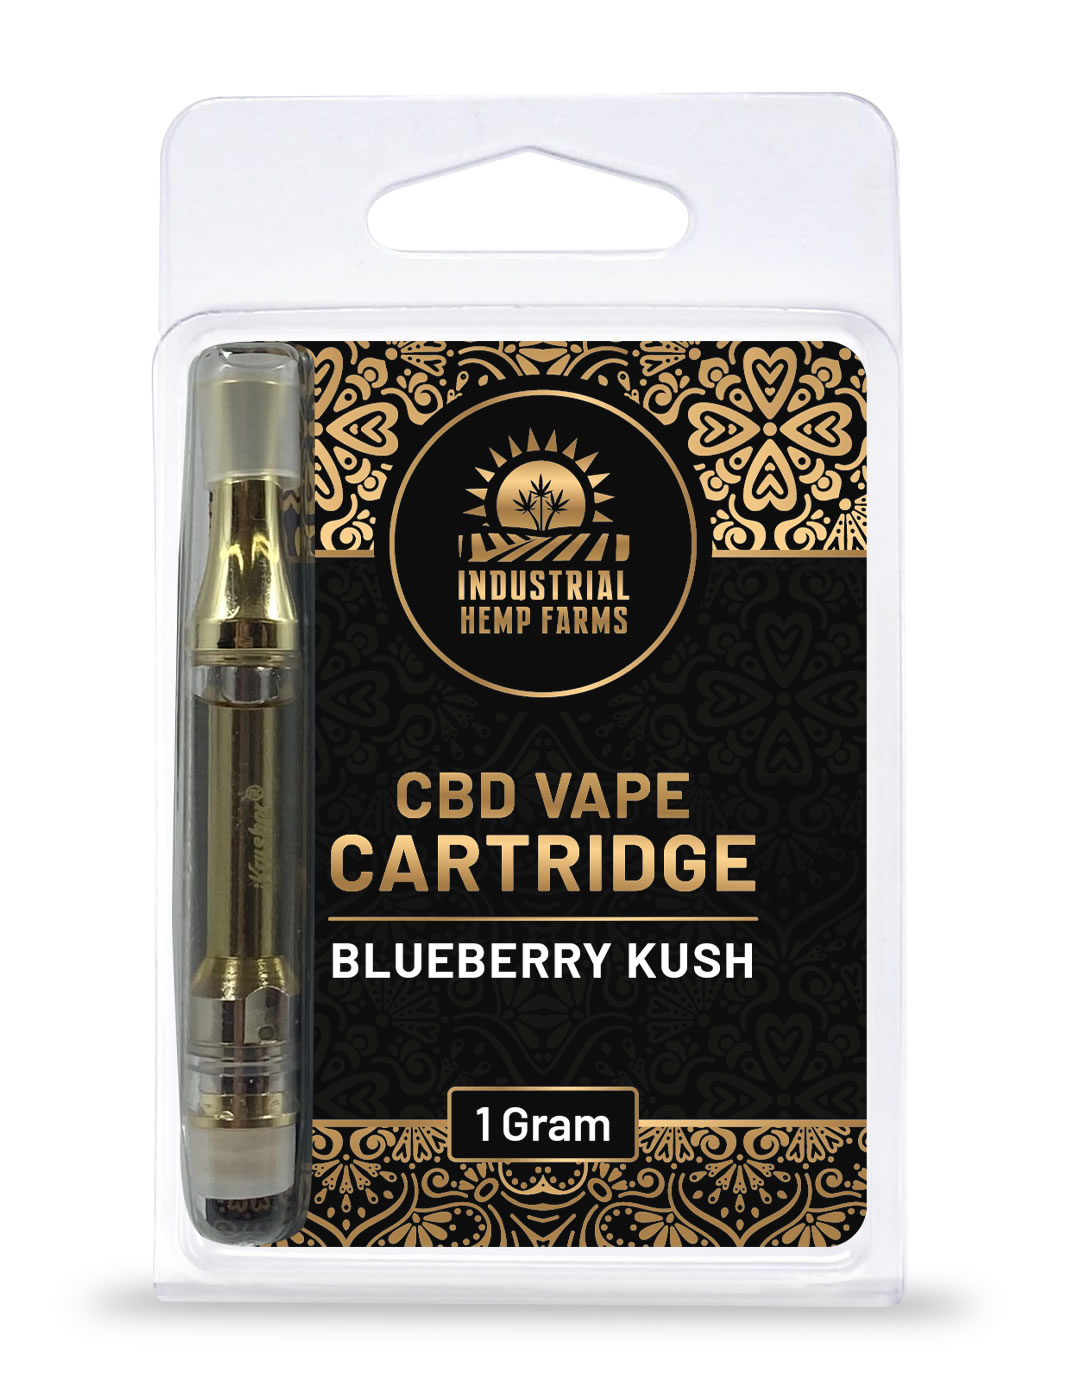 blueberry kush cbd vape pen cartridge